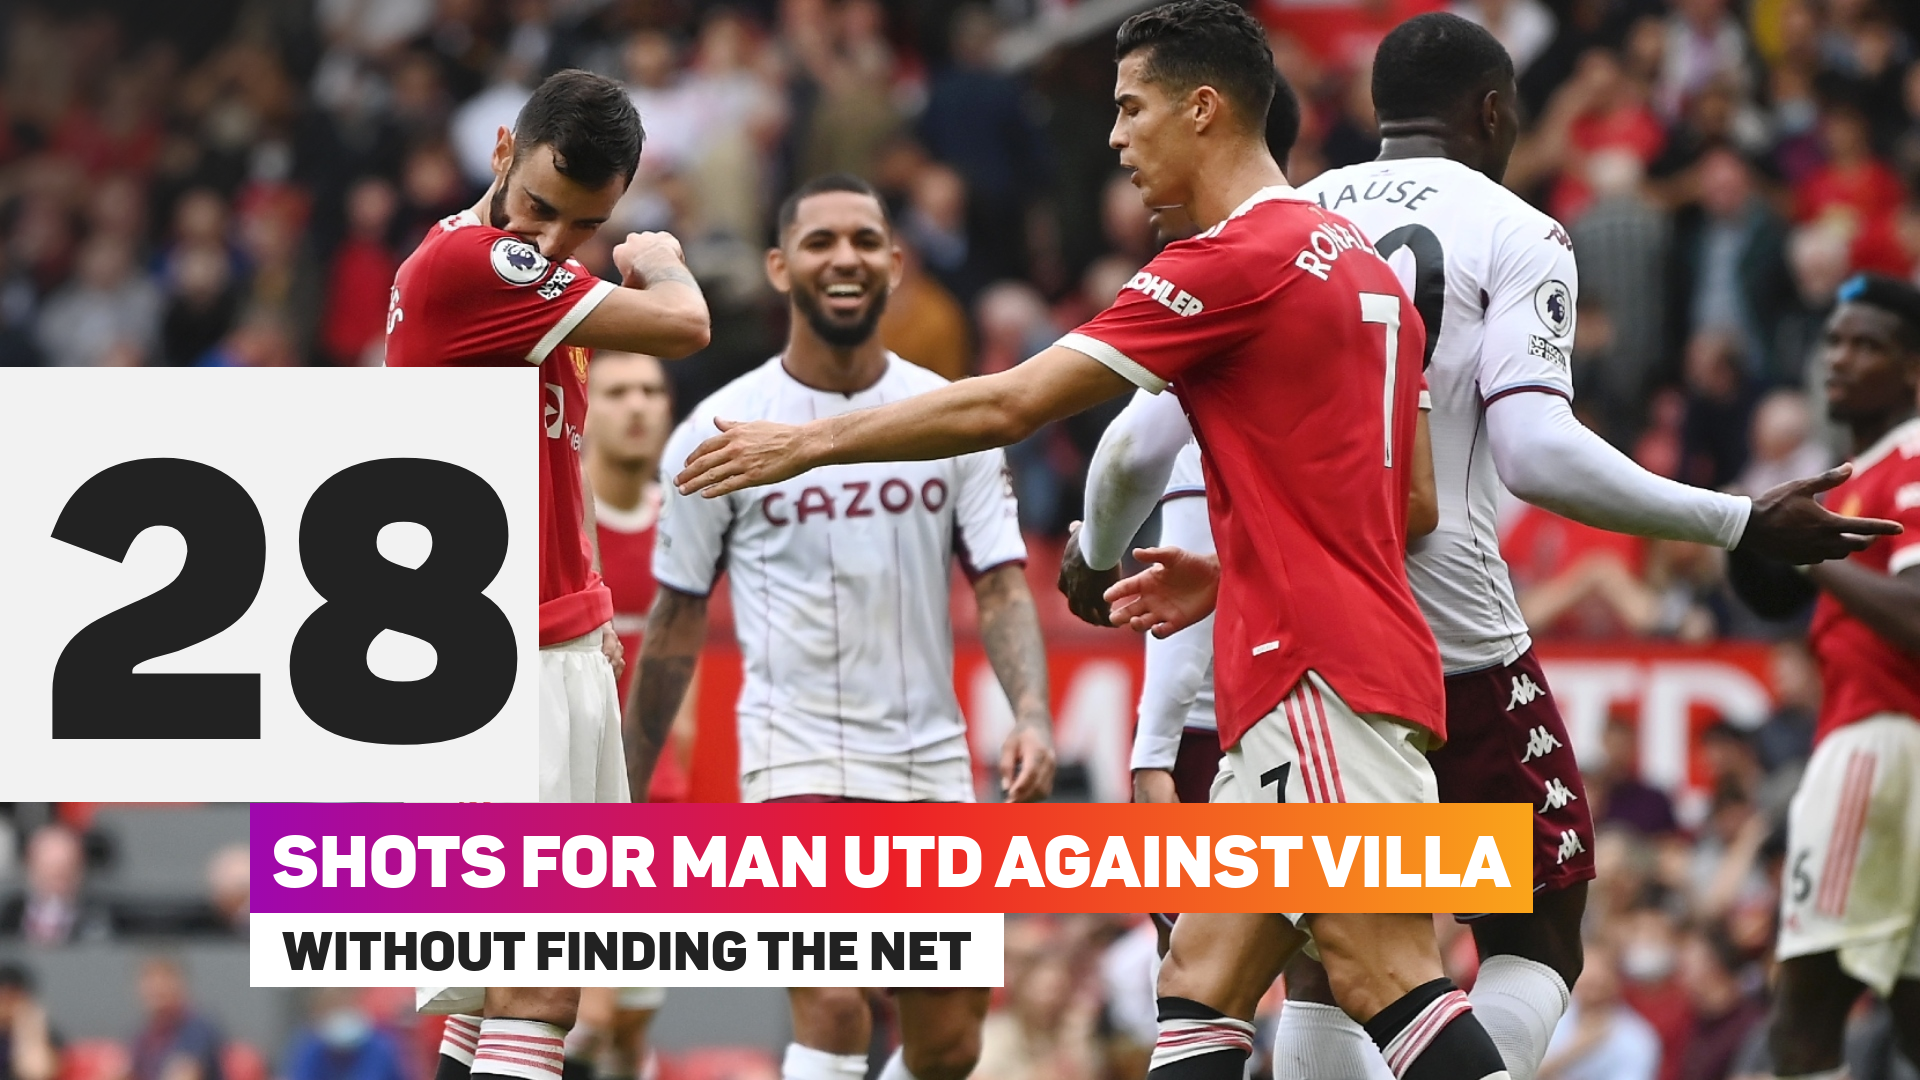 Manchester United had 28 shots against Aston Villa without scoring